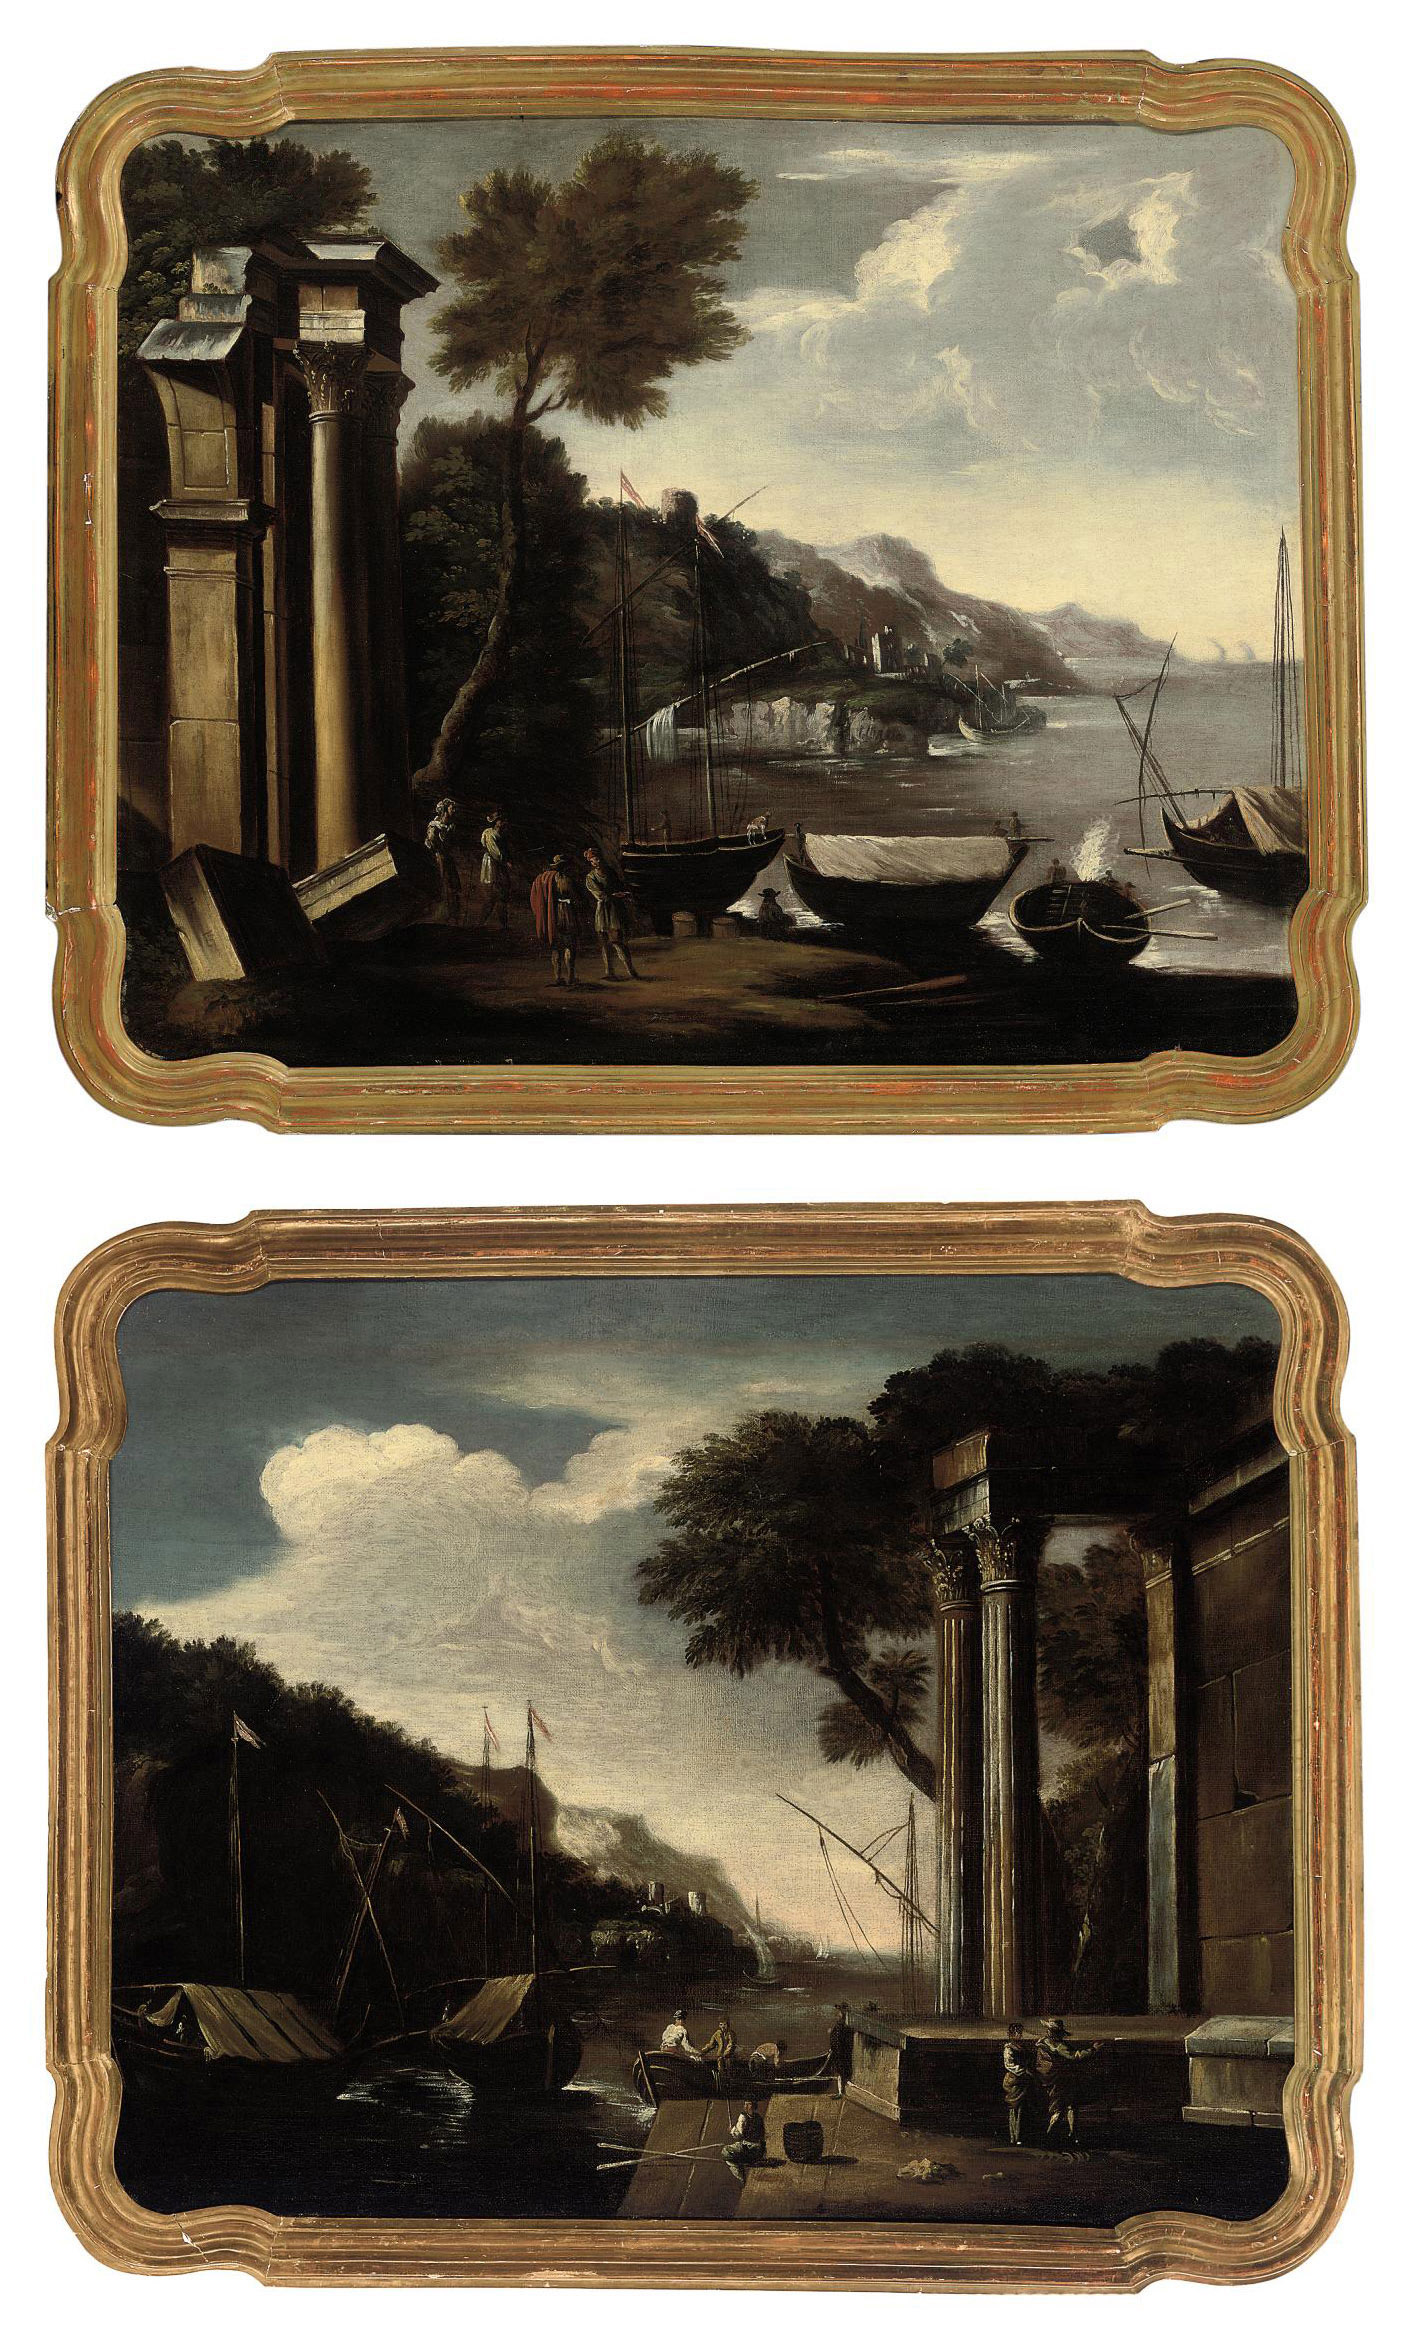 A capriccio of classical ruins near the coast with figures conversing in the foreground; and A capriccio of classical ruins near the coast with figures on a boat and a man fishing